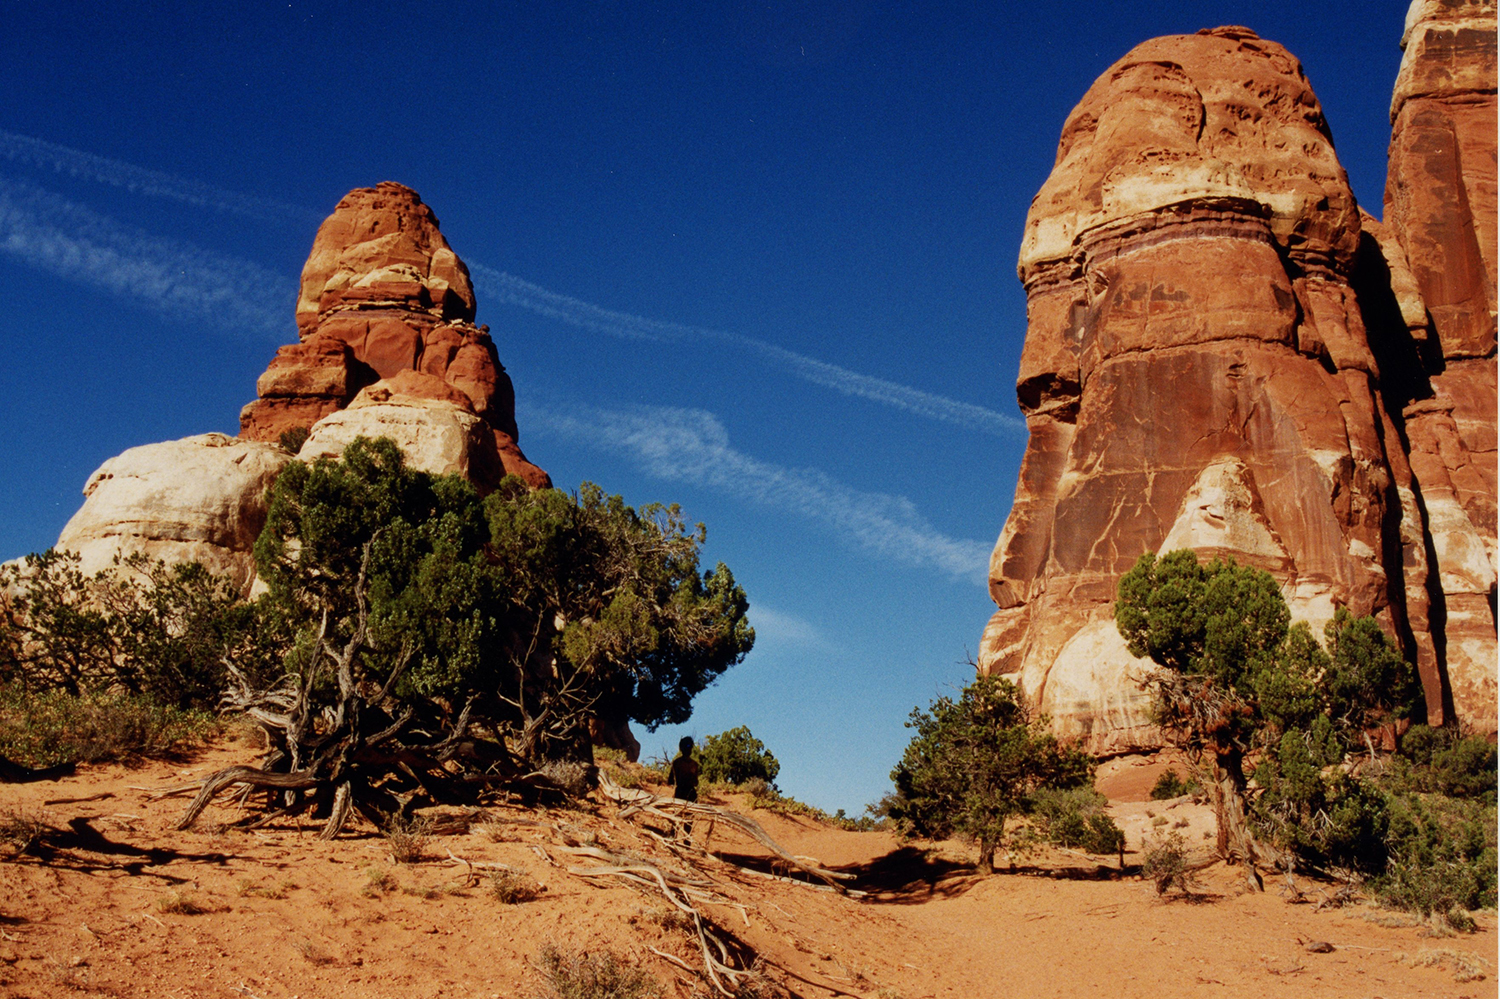 The hoodoos are stone statues to admire from the shade. Canyonlands photo, 1998